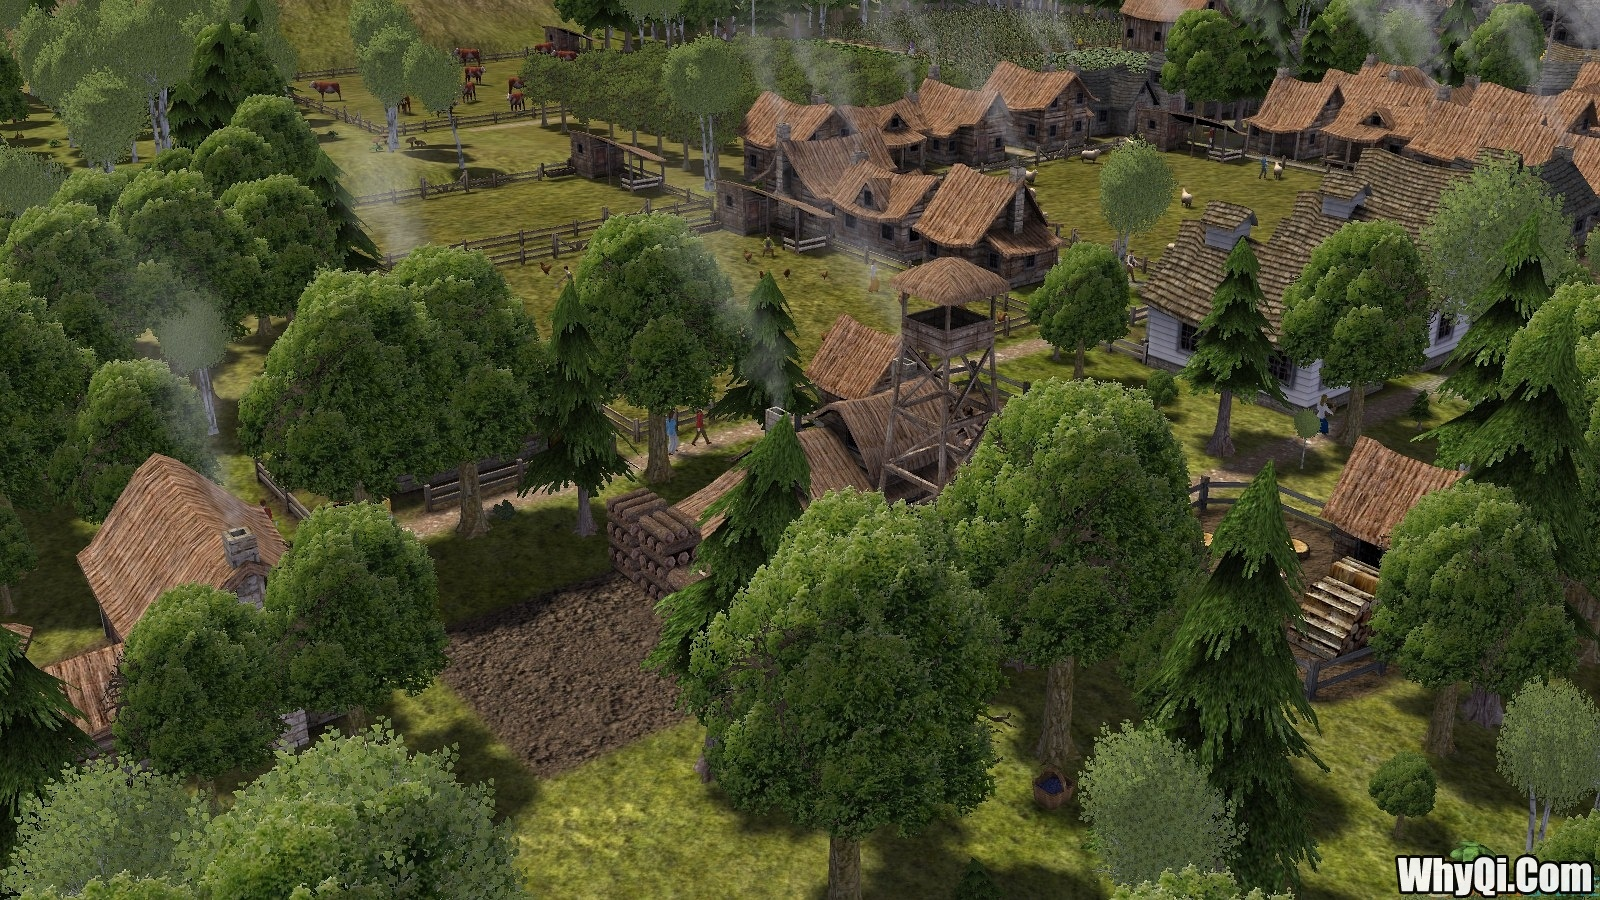 PC-[放逐之城]Banished 64位+32位游戏CE修改下载 [作弊器] [修改器] [Cheat Engine] - 第7张  | 歪奇